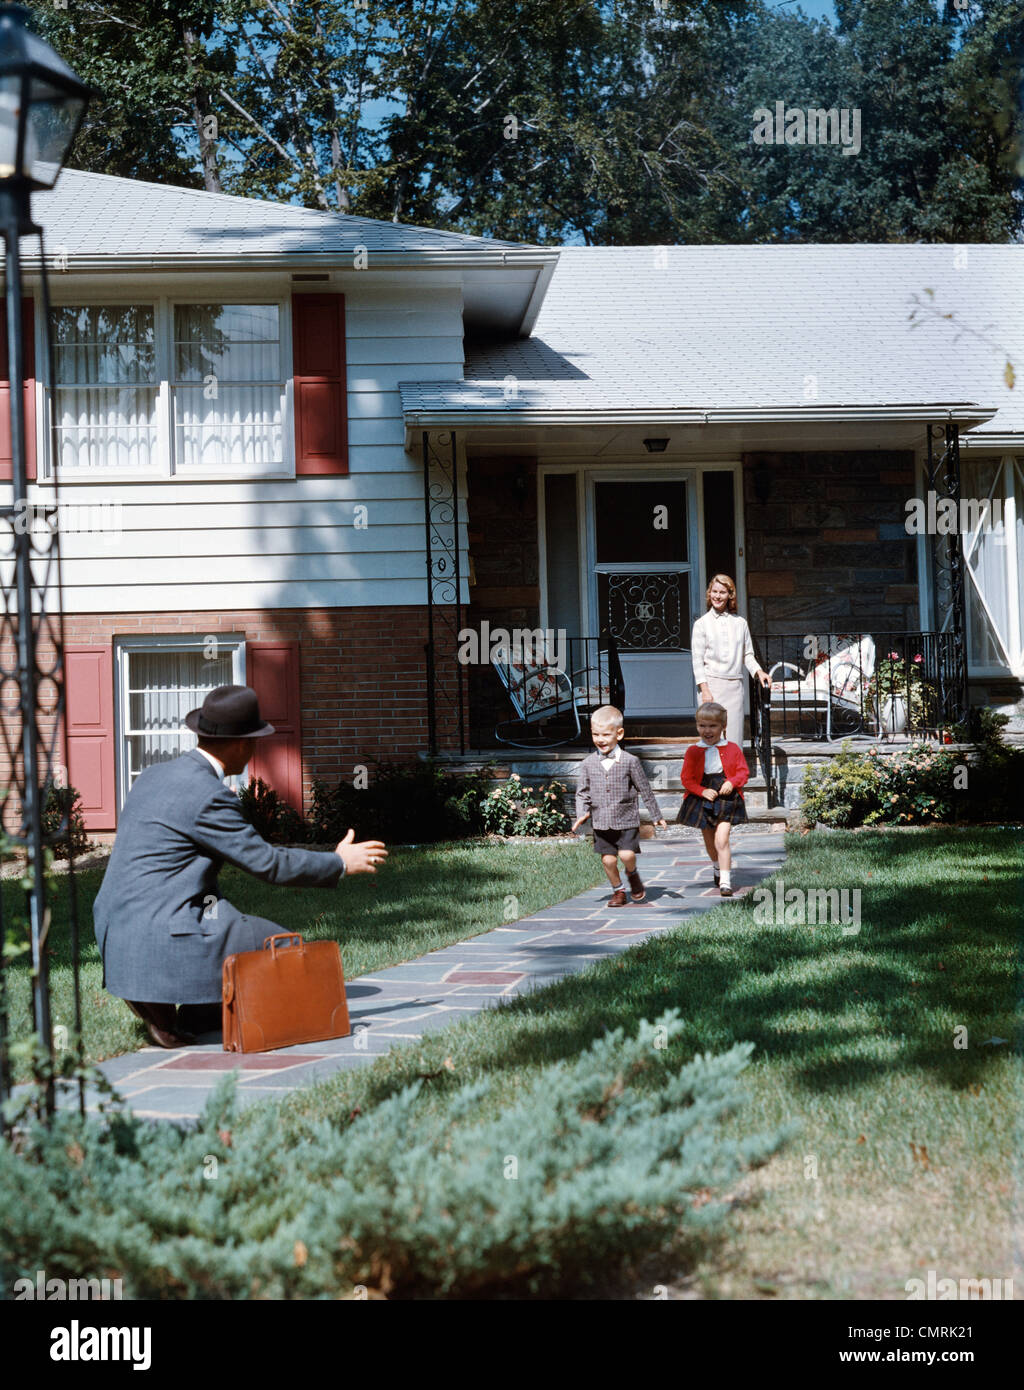 1950s FATHER COMING HOME KNEELING ARMS EXTENDED BOY GIRL RUNNING TO WELCOME HIM WOMAN STAND SUBURBAN HOUSE FAMILY - Stock Image